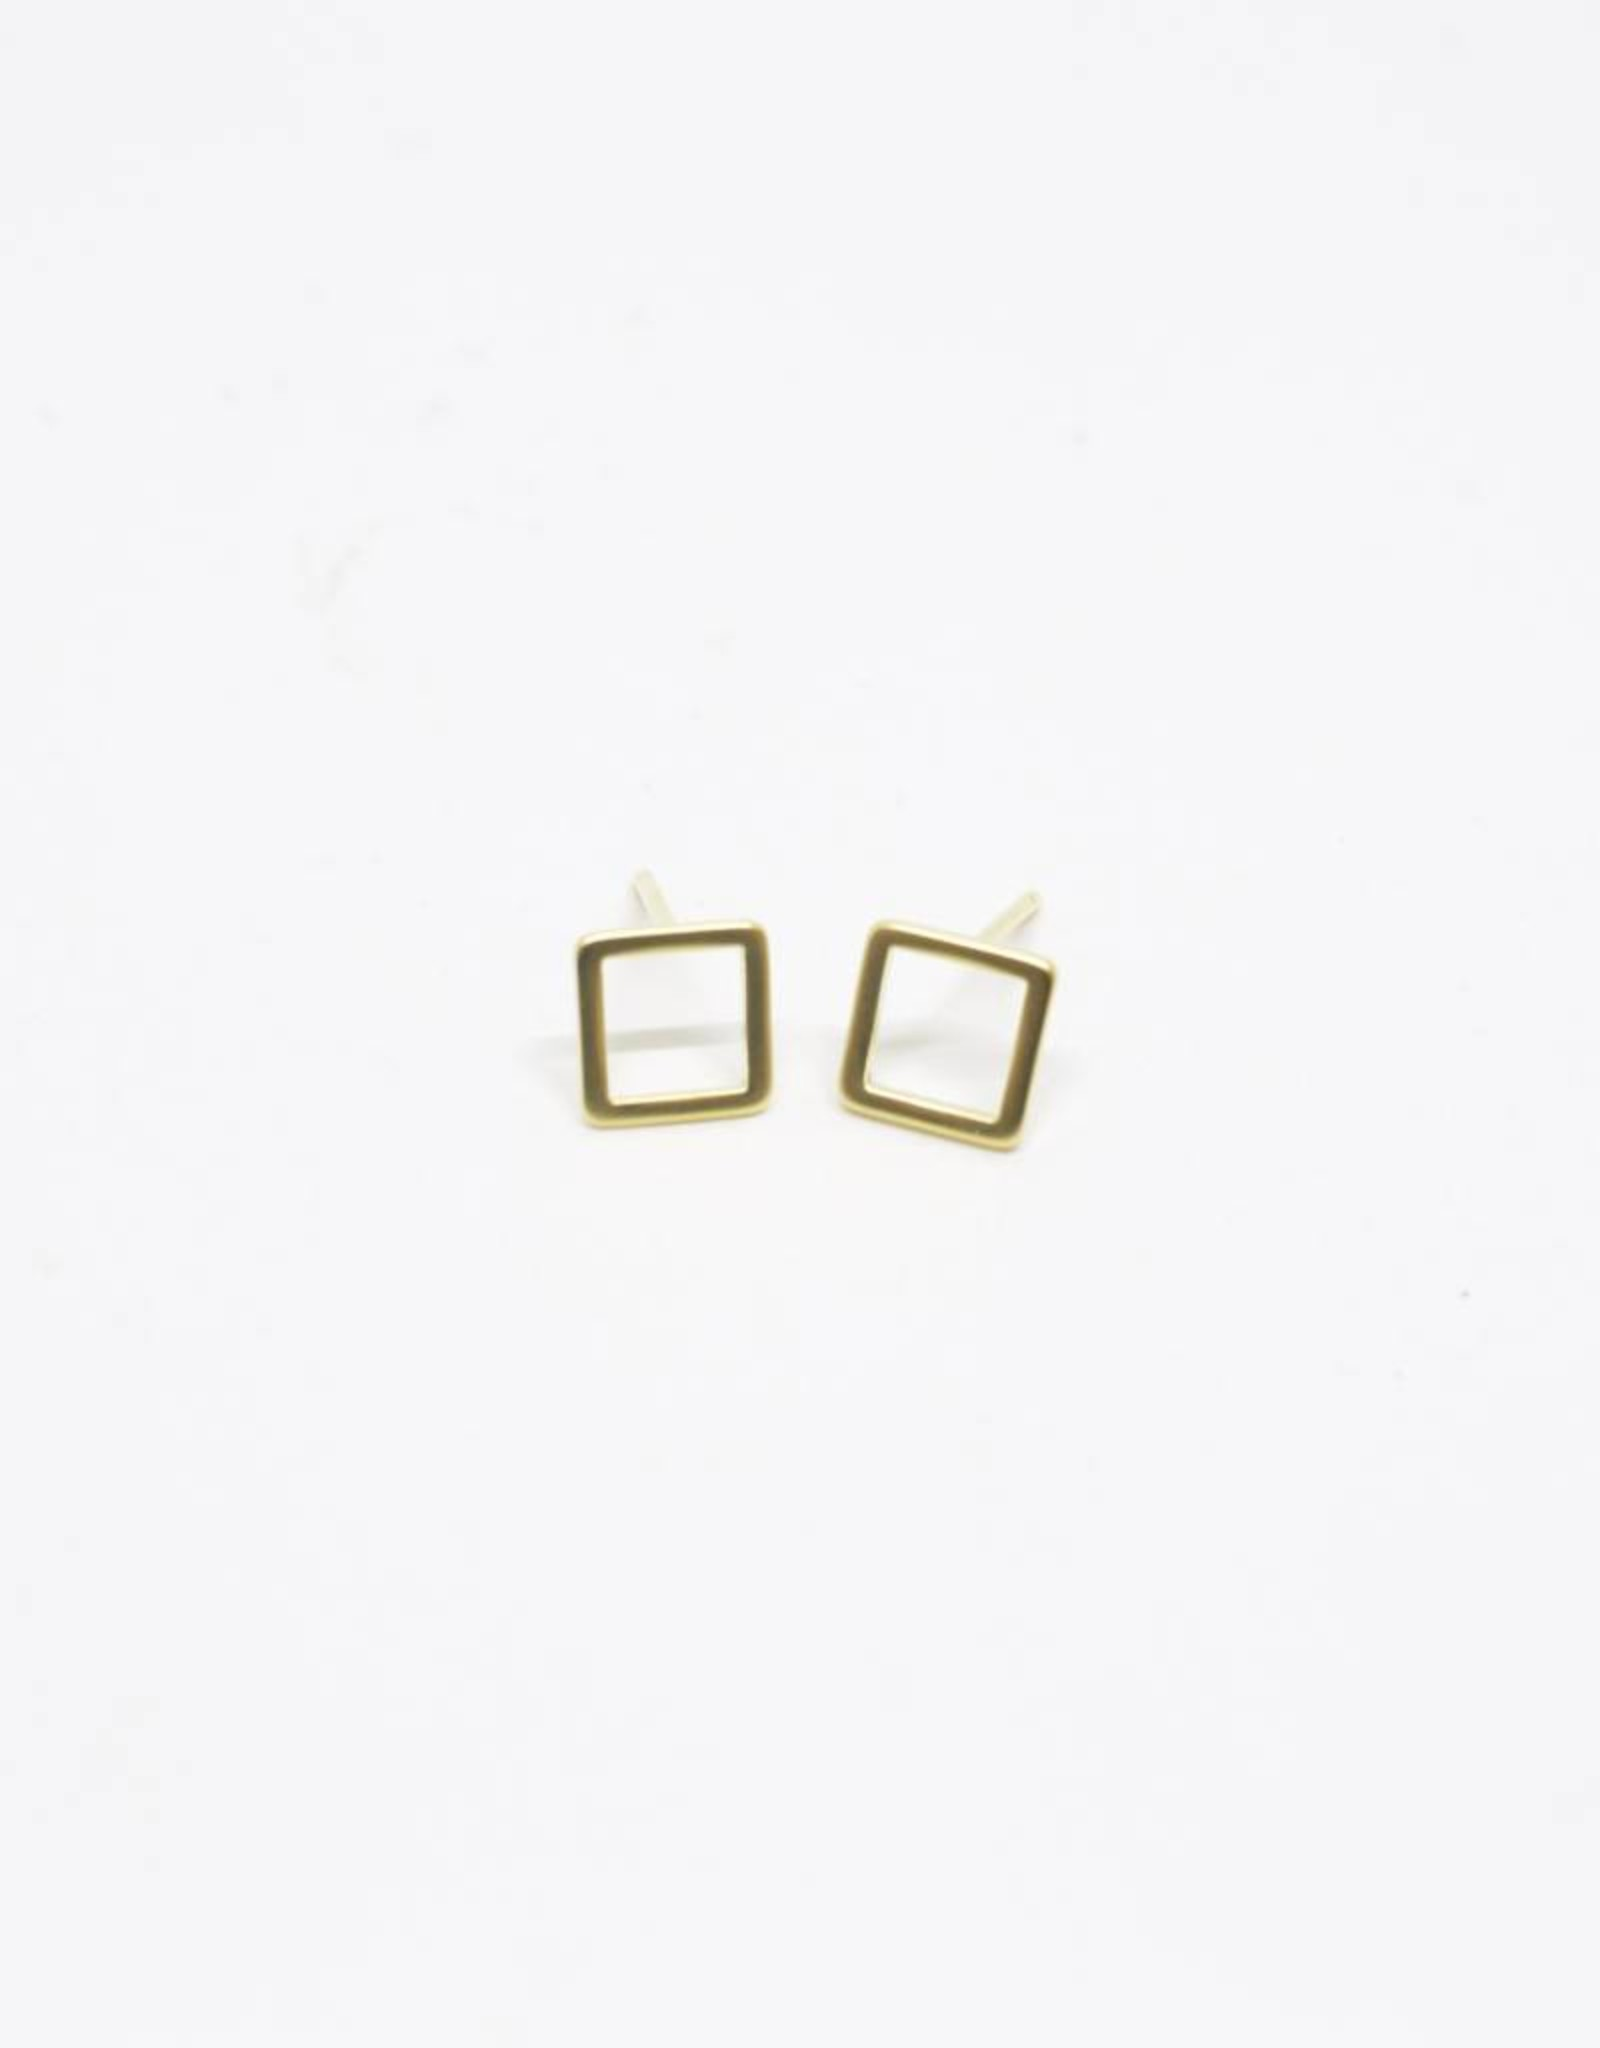 Standout Boutique Lily Stud Earrings - Square